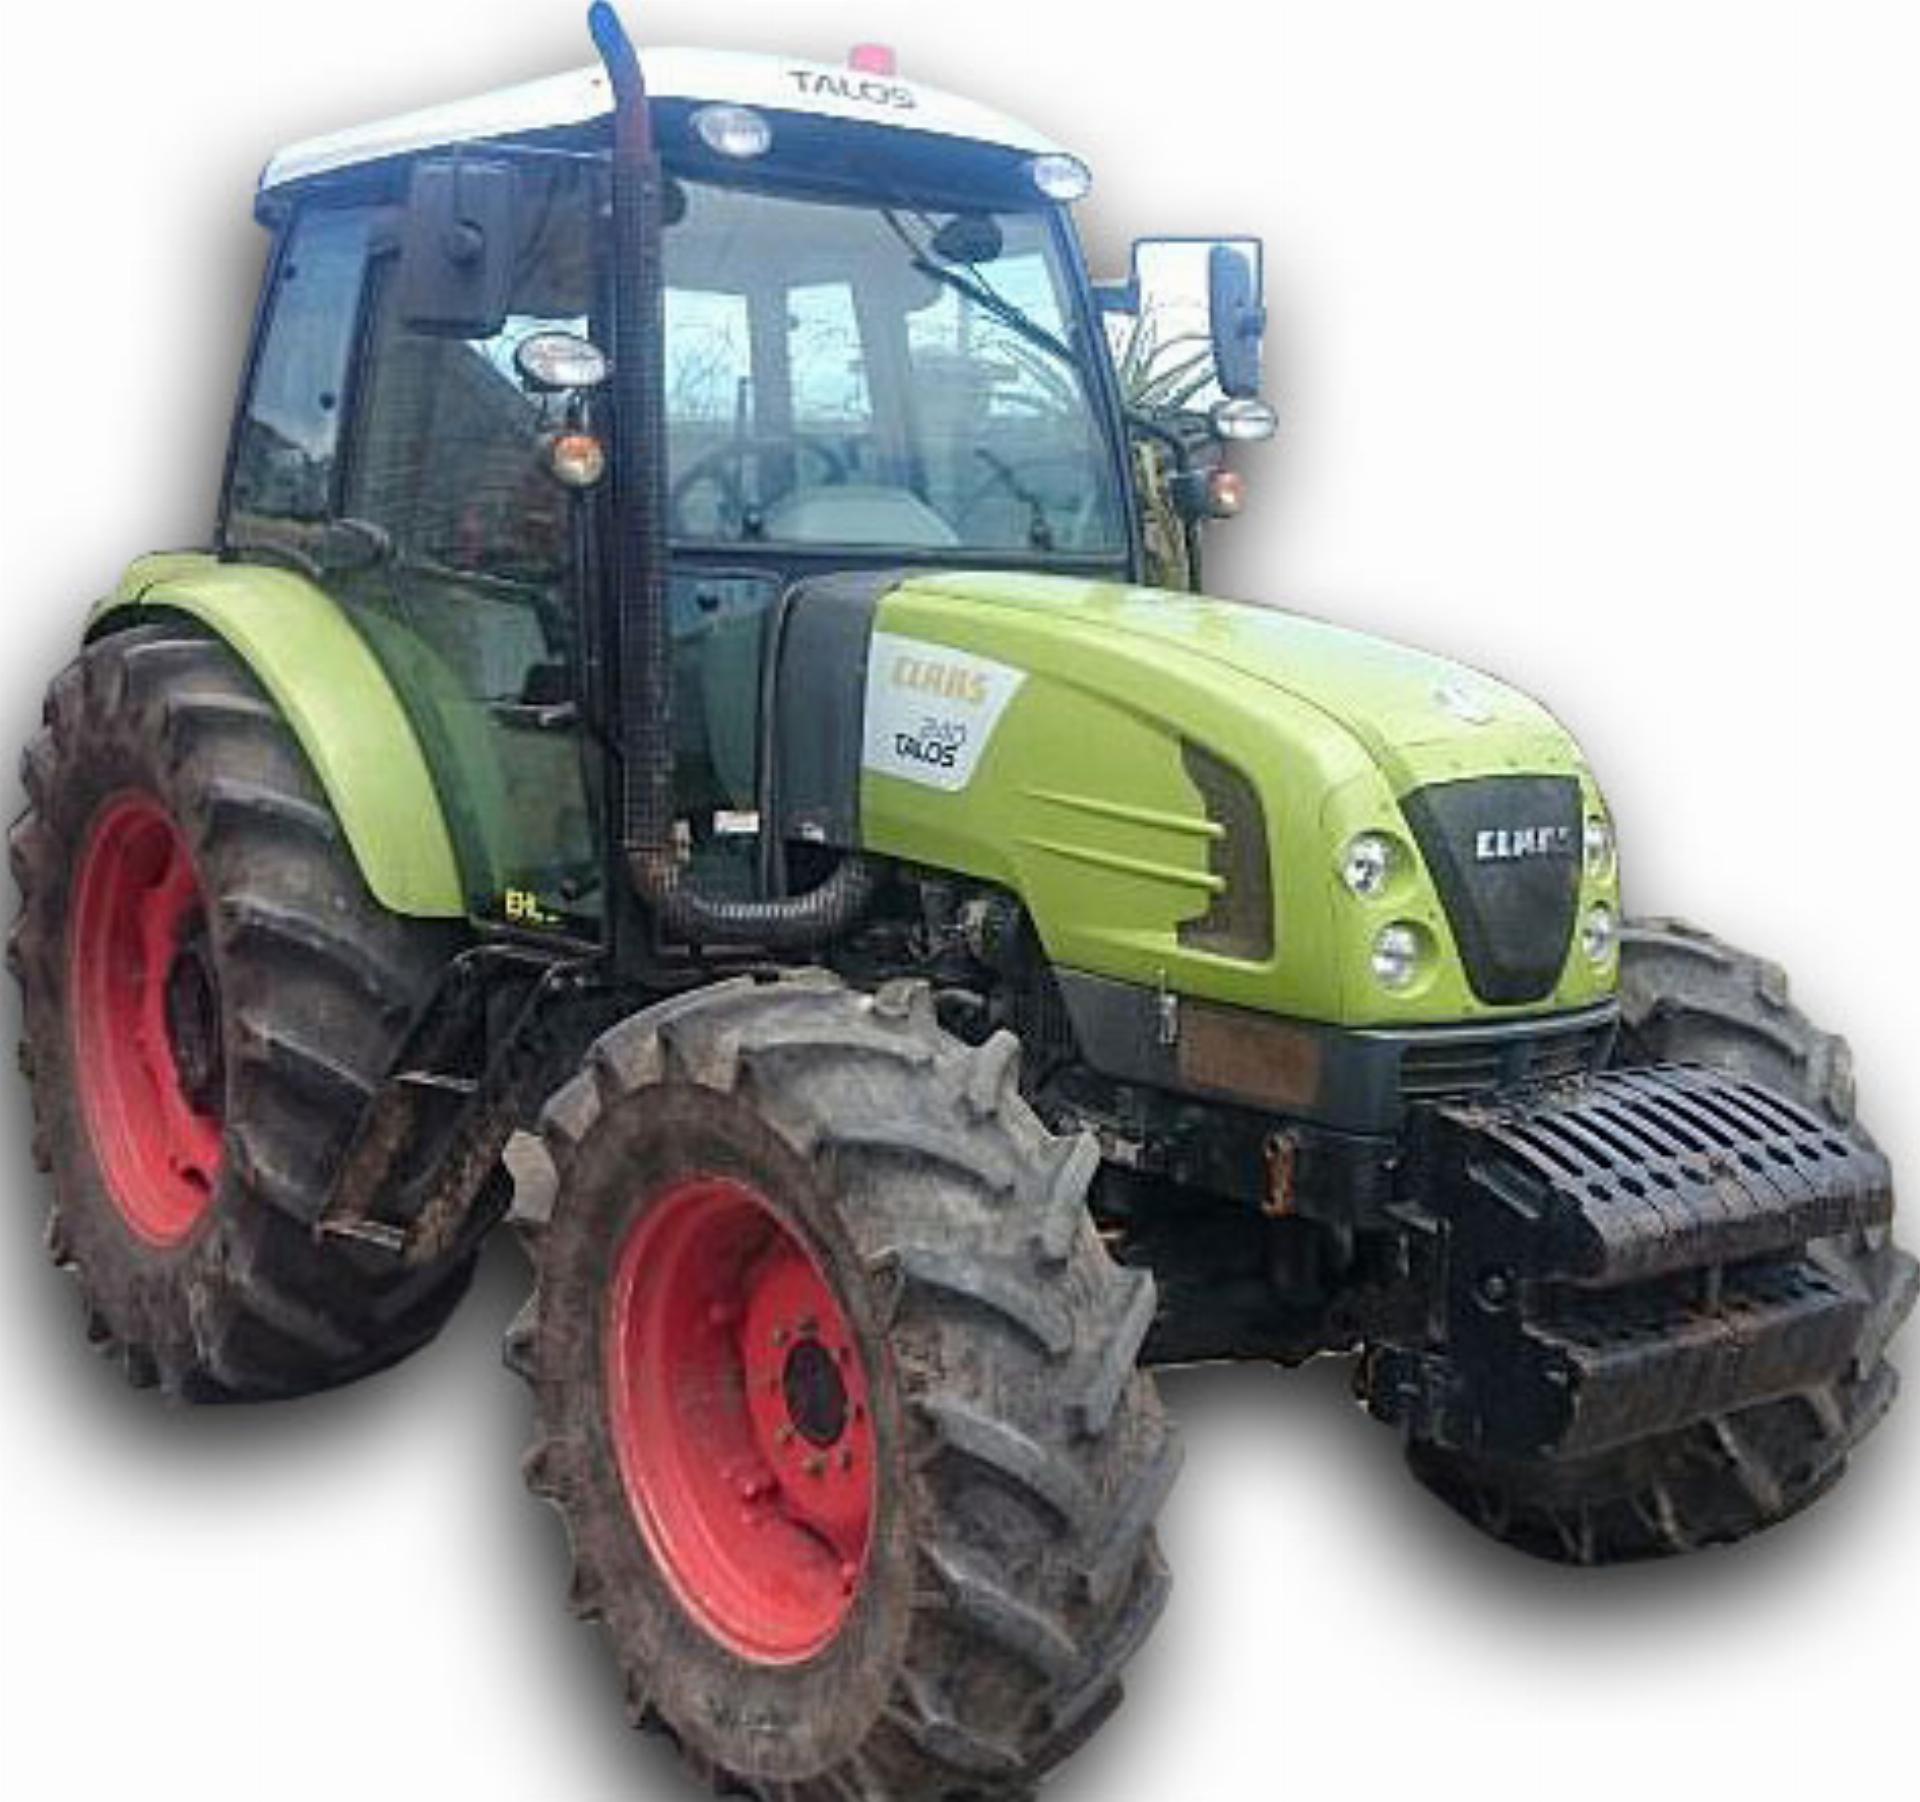 Repossessed Claas Talos 240 Cab 4WD 2013 On Auction